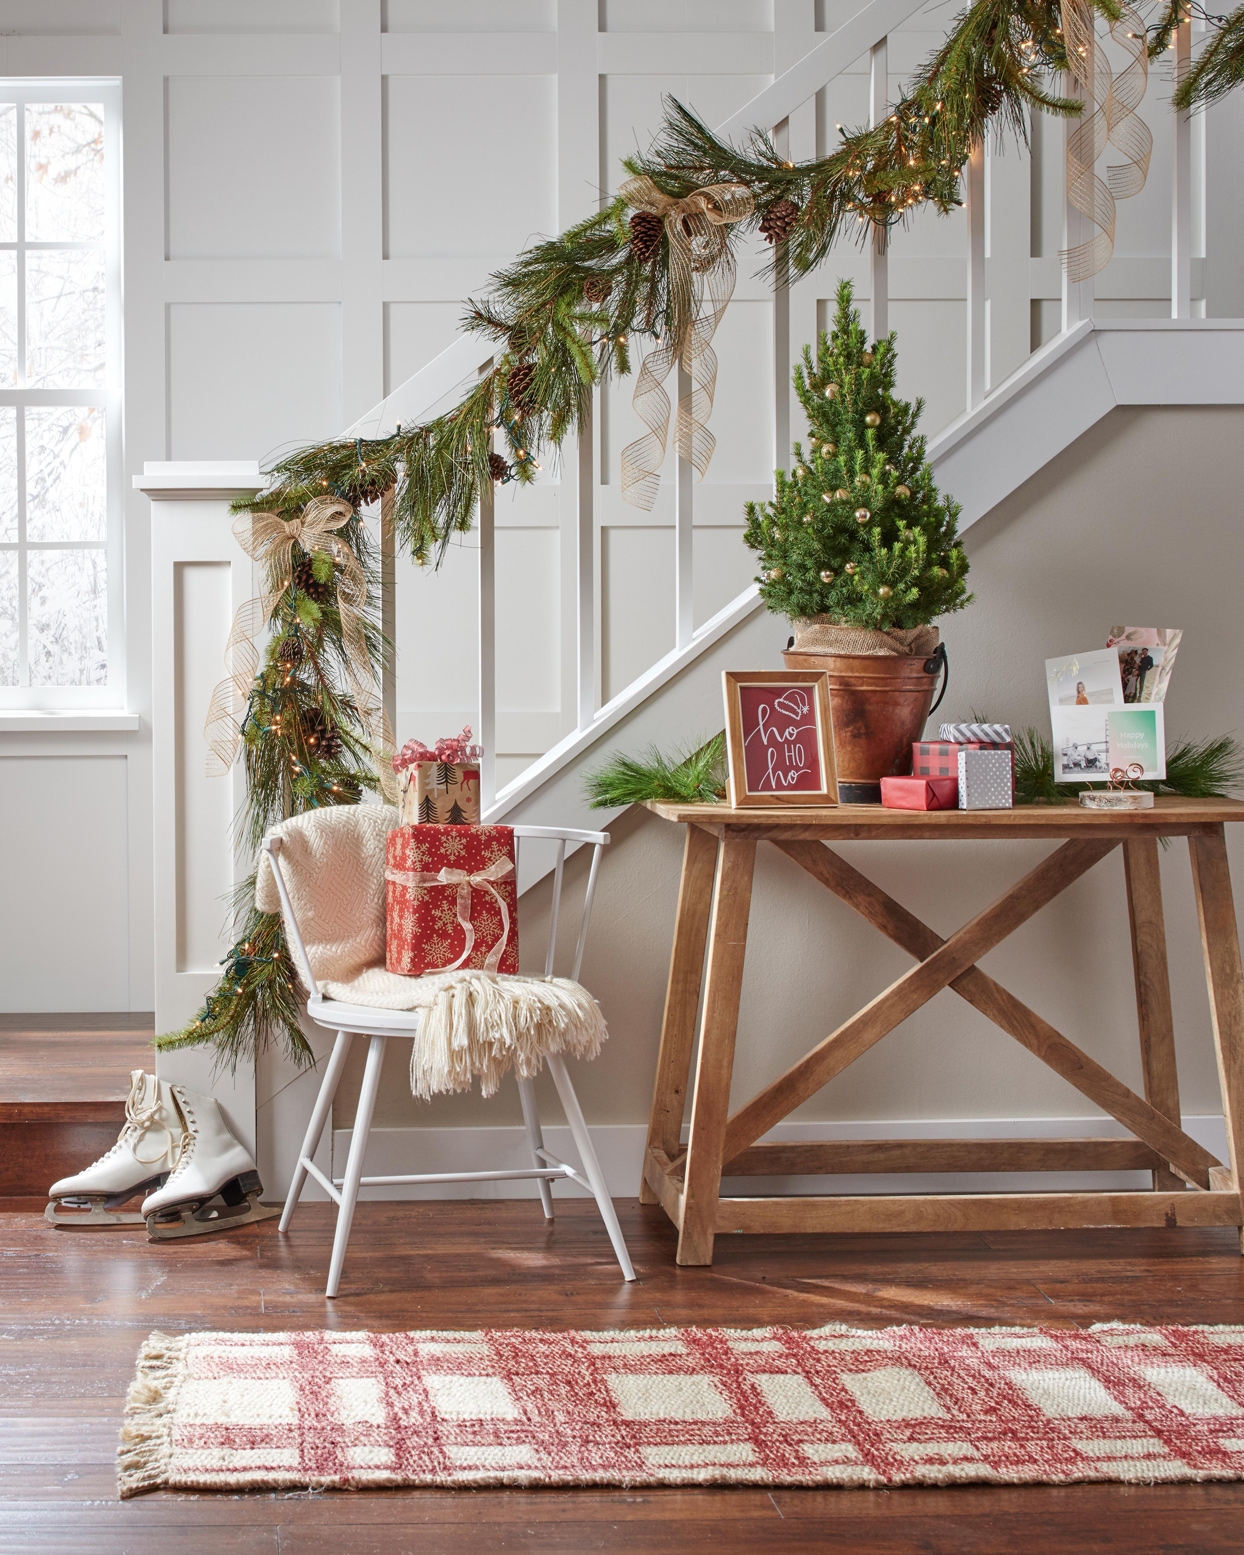 Entryway Christmas decor greenery